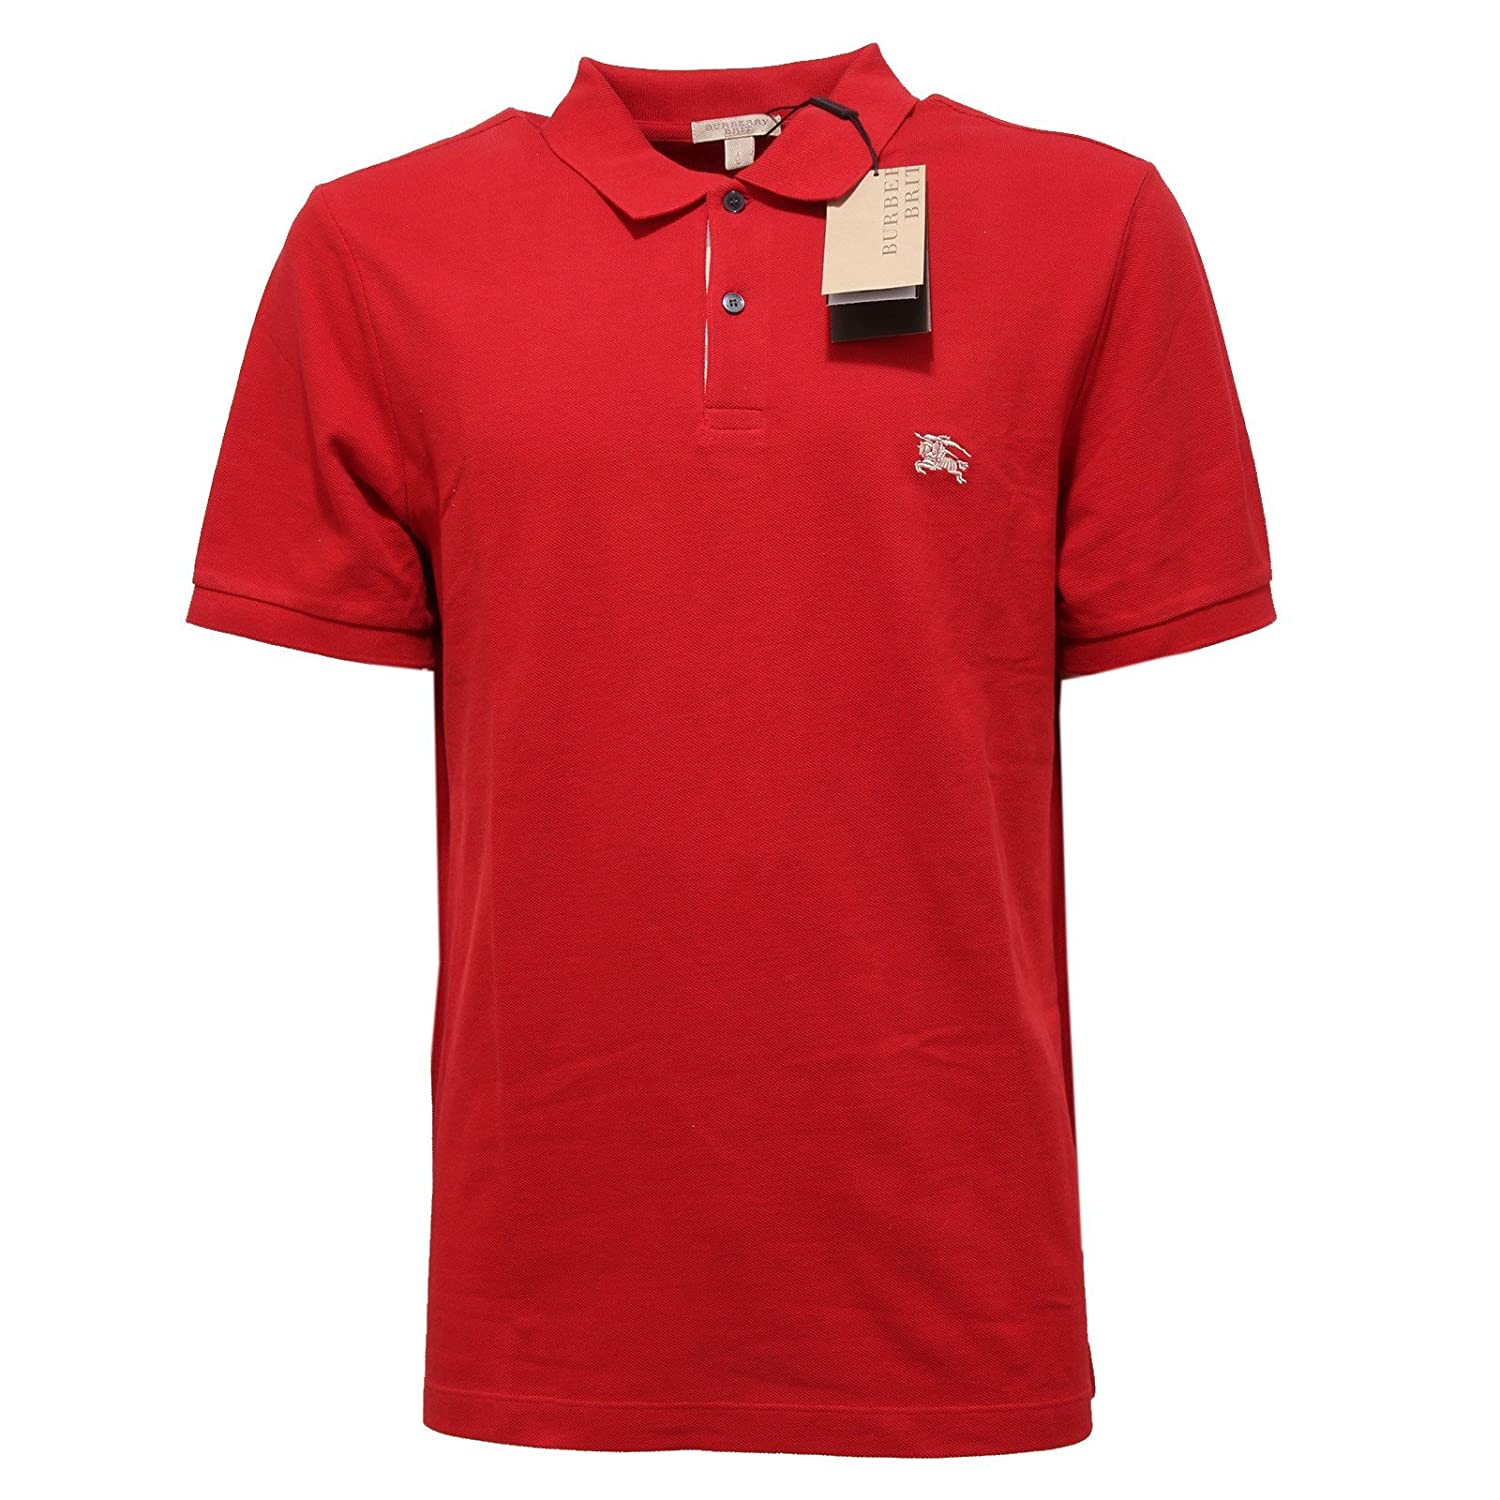 07303c5f8886 outlet Burberry Brit Men s Check Placket Pique Military Red Polo Shirt  Modern Fit (Large)